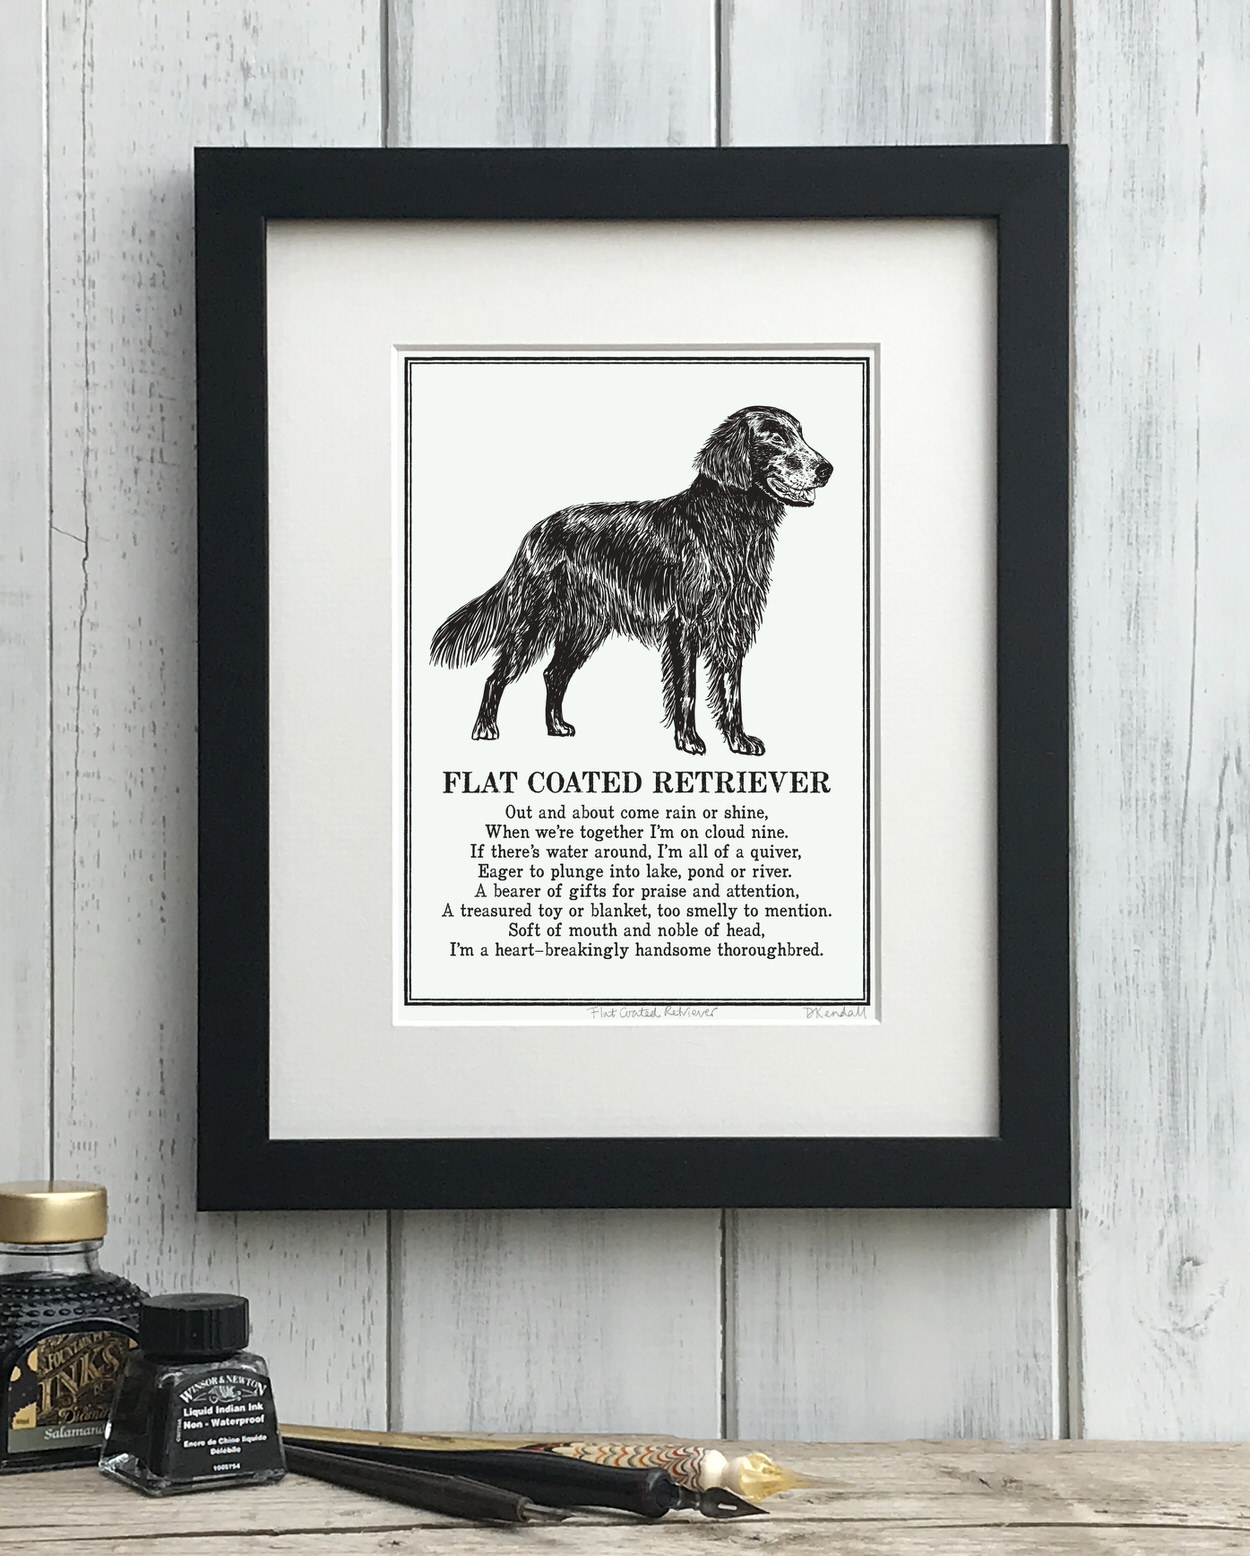 Flat Coated Retriever print illustrated poem by The Enlightened Hound